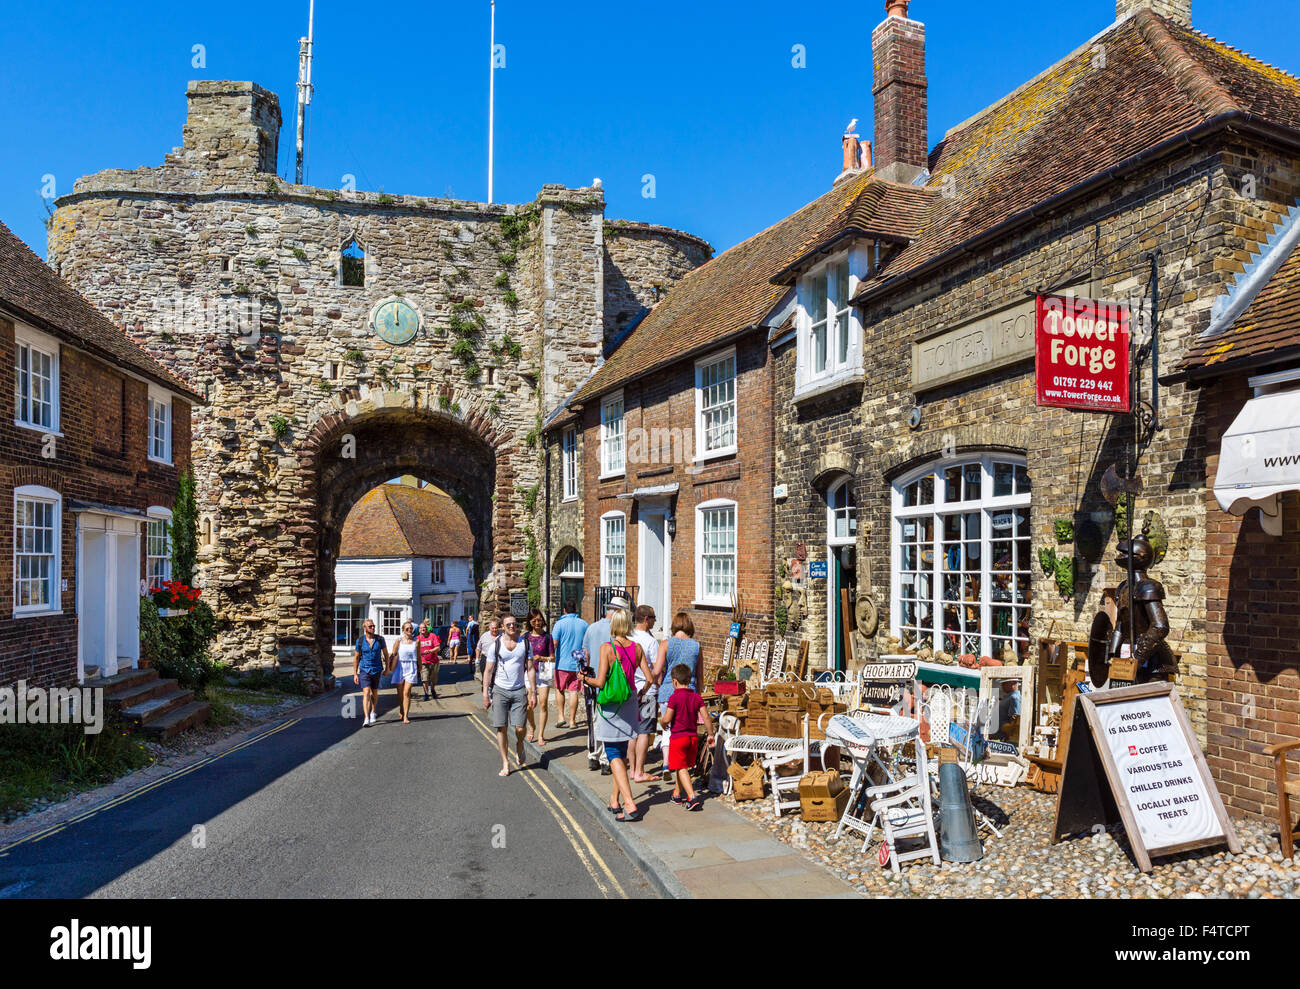 La 14thC Landgate arch, une entrée dans la vieille ville, Rye, East Sussex, England, UK Photo Stock